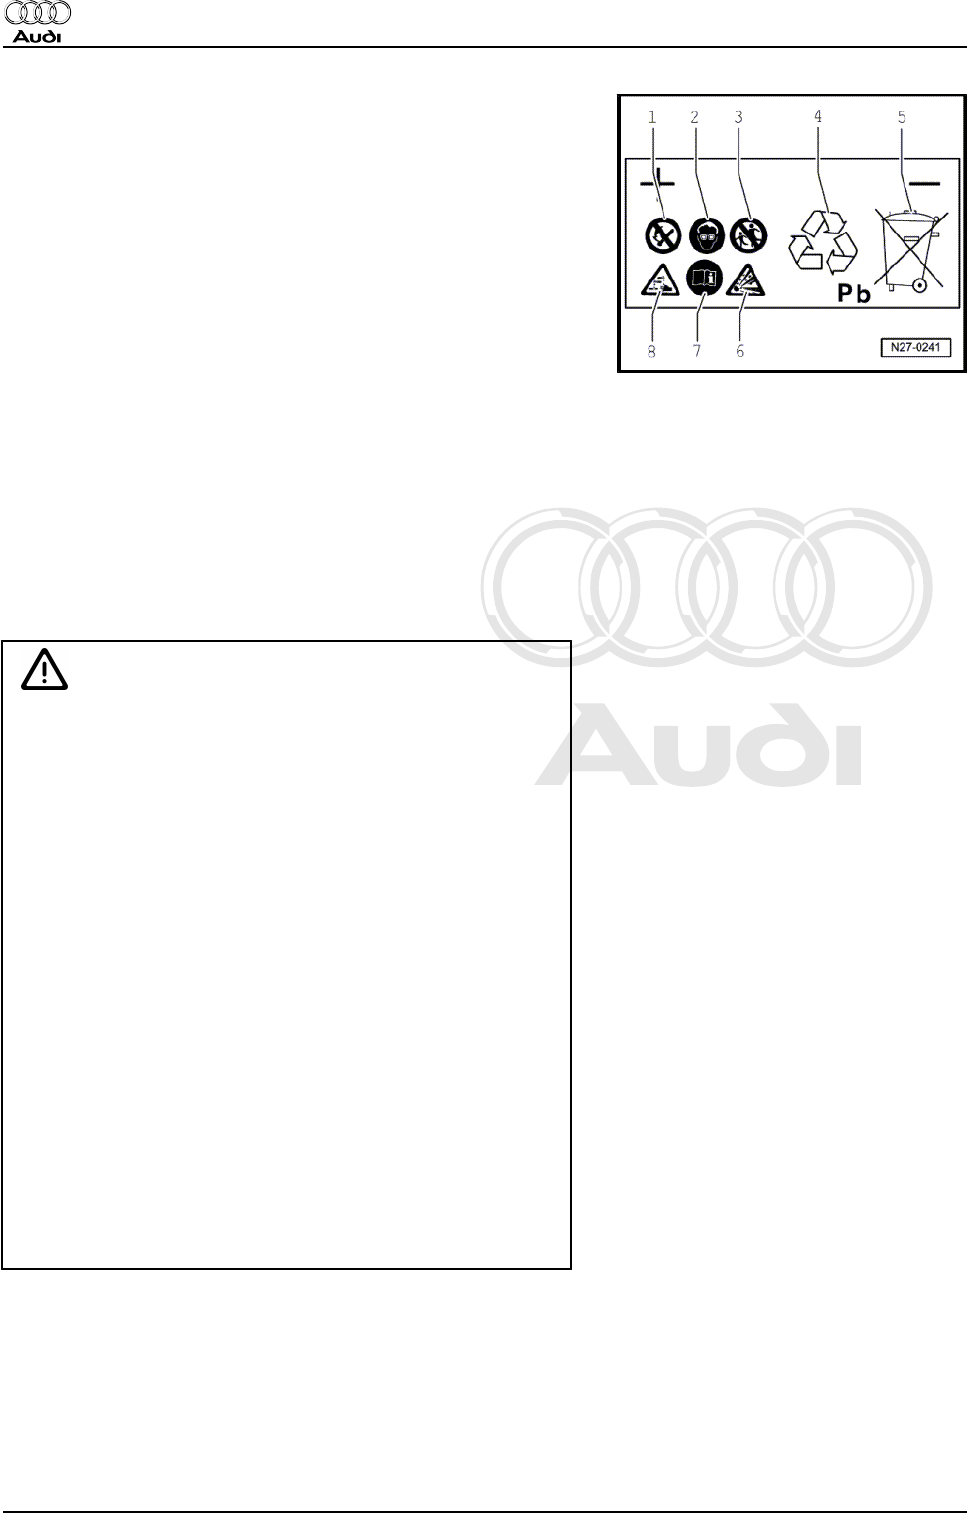 Audi Q5 2008 Workshop Manual 2 PDF